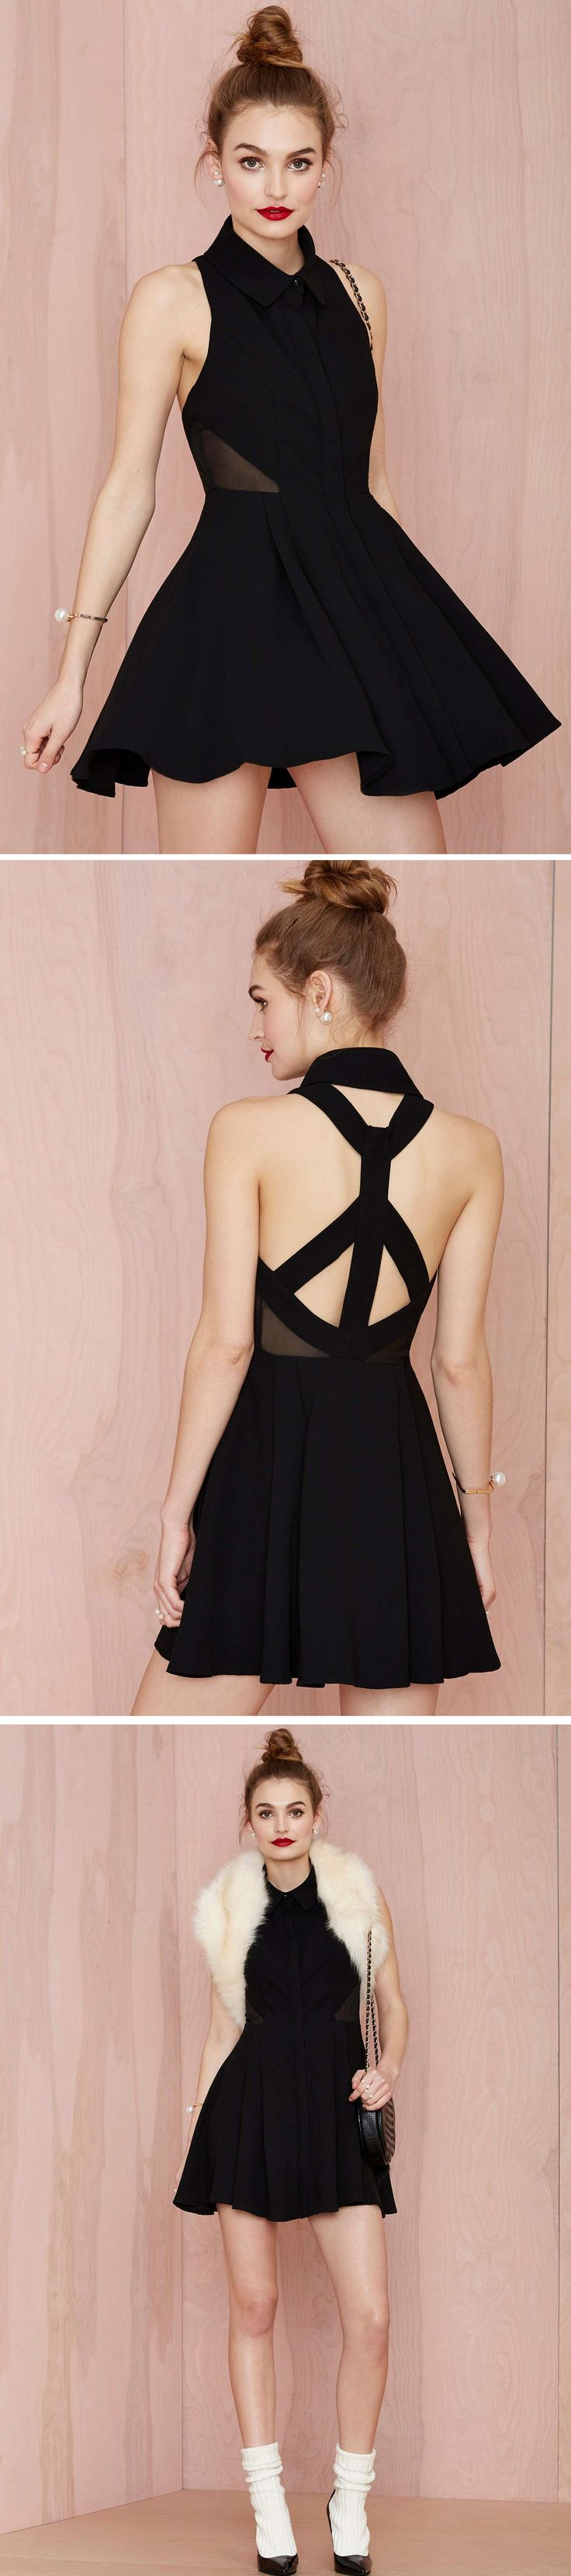 Nasty Gal Black Magic Woman Dress